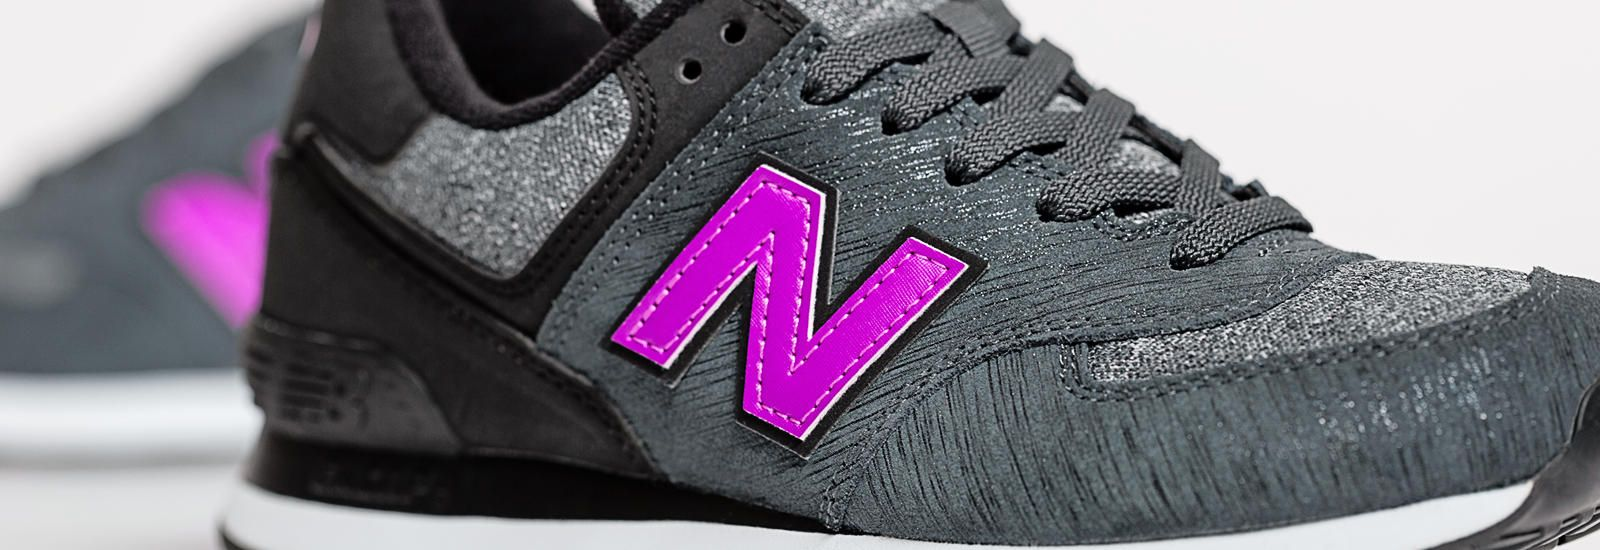 new balance 574 purple black